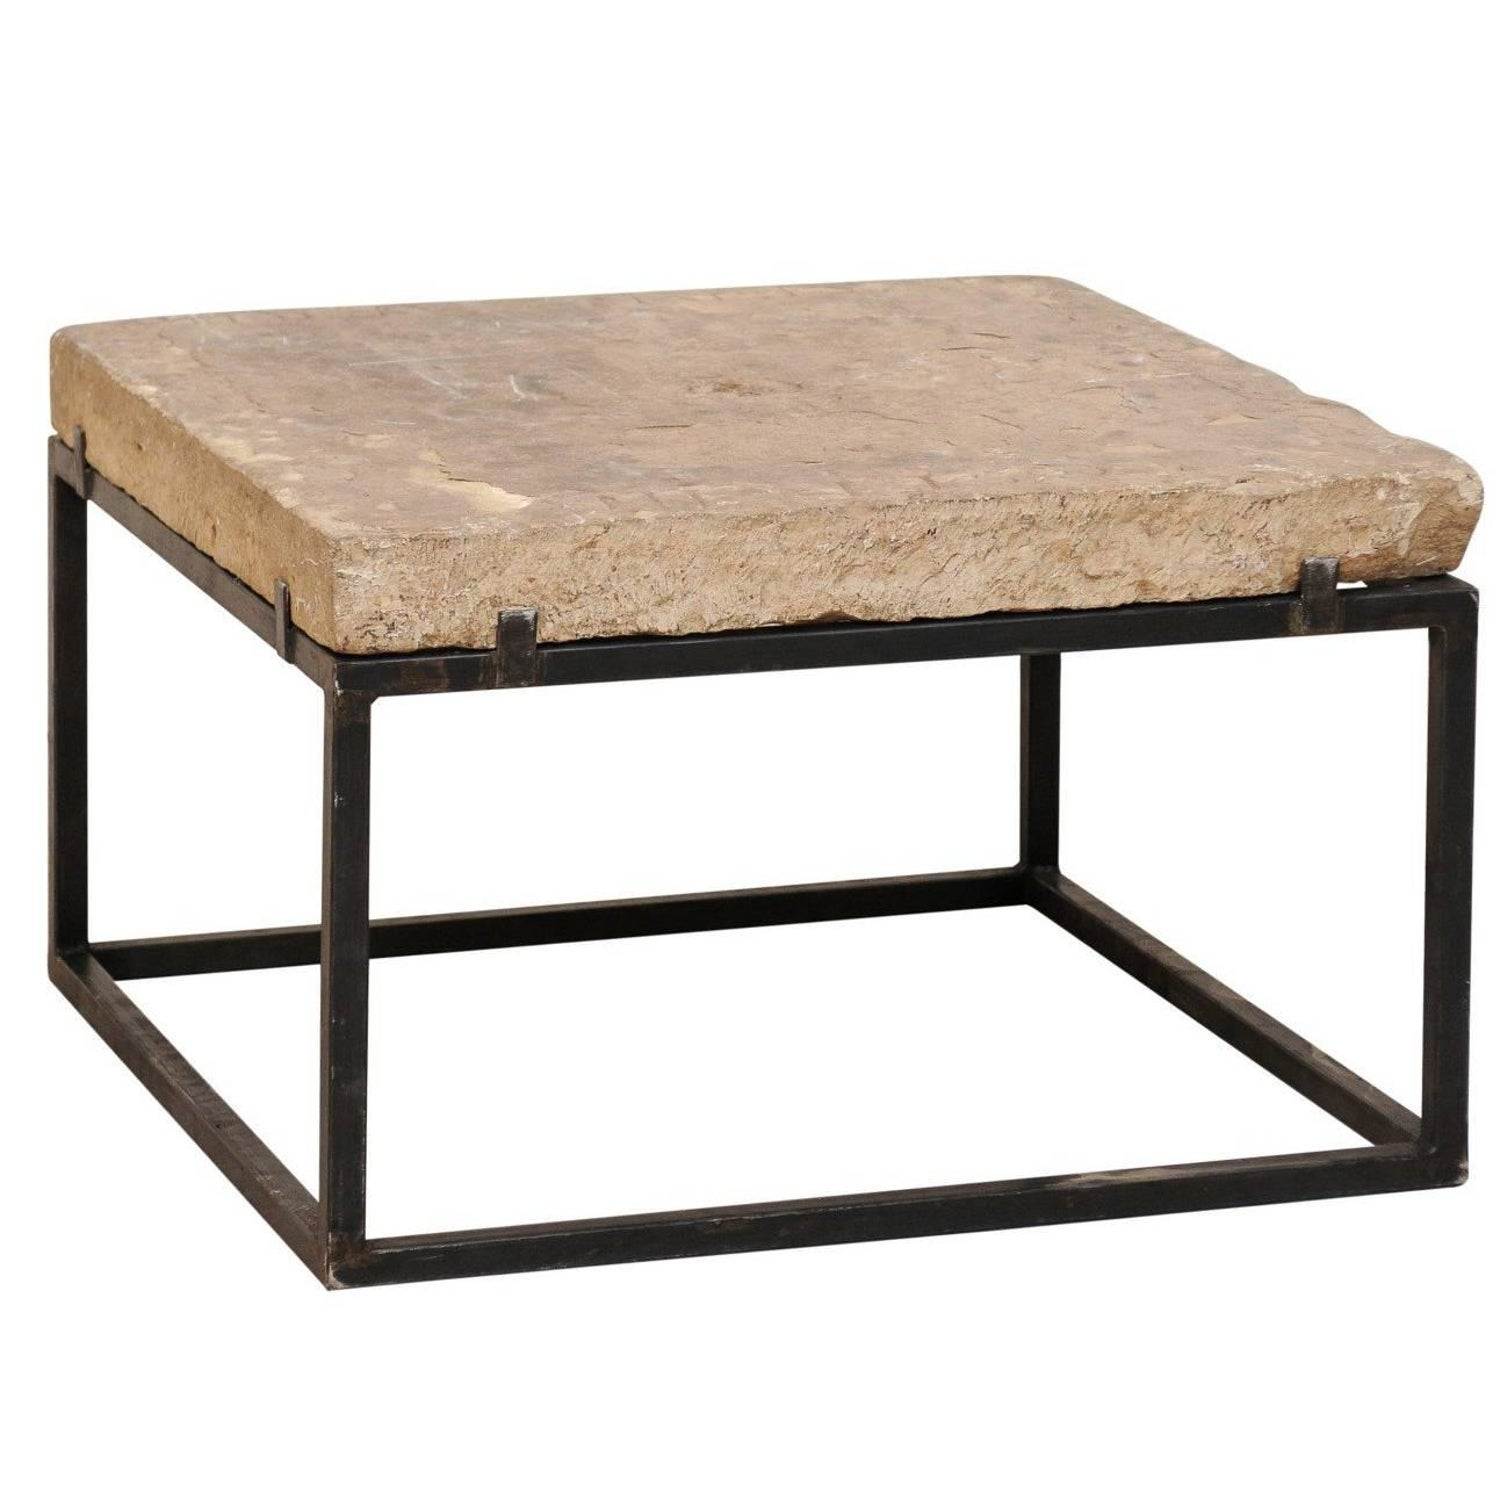 Seagrass Stone Top Coffee Table on Blackened Metal Base For Sale